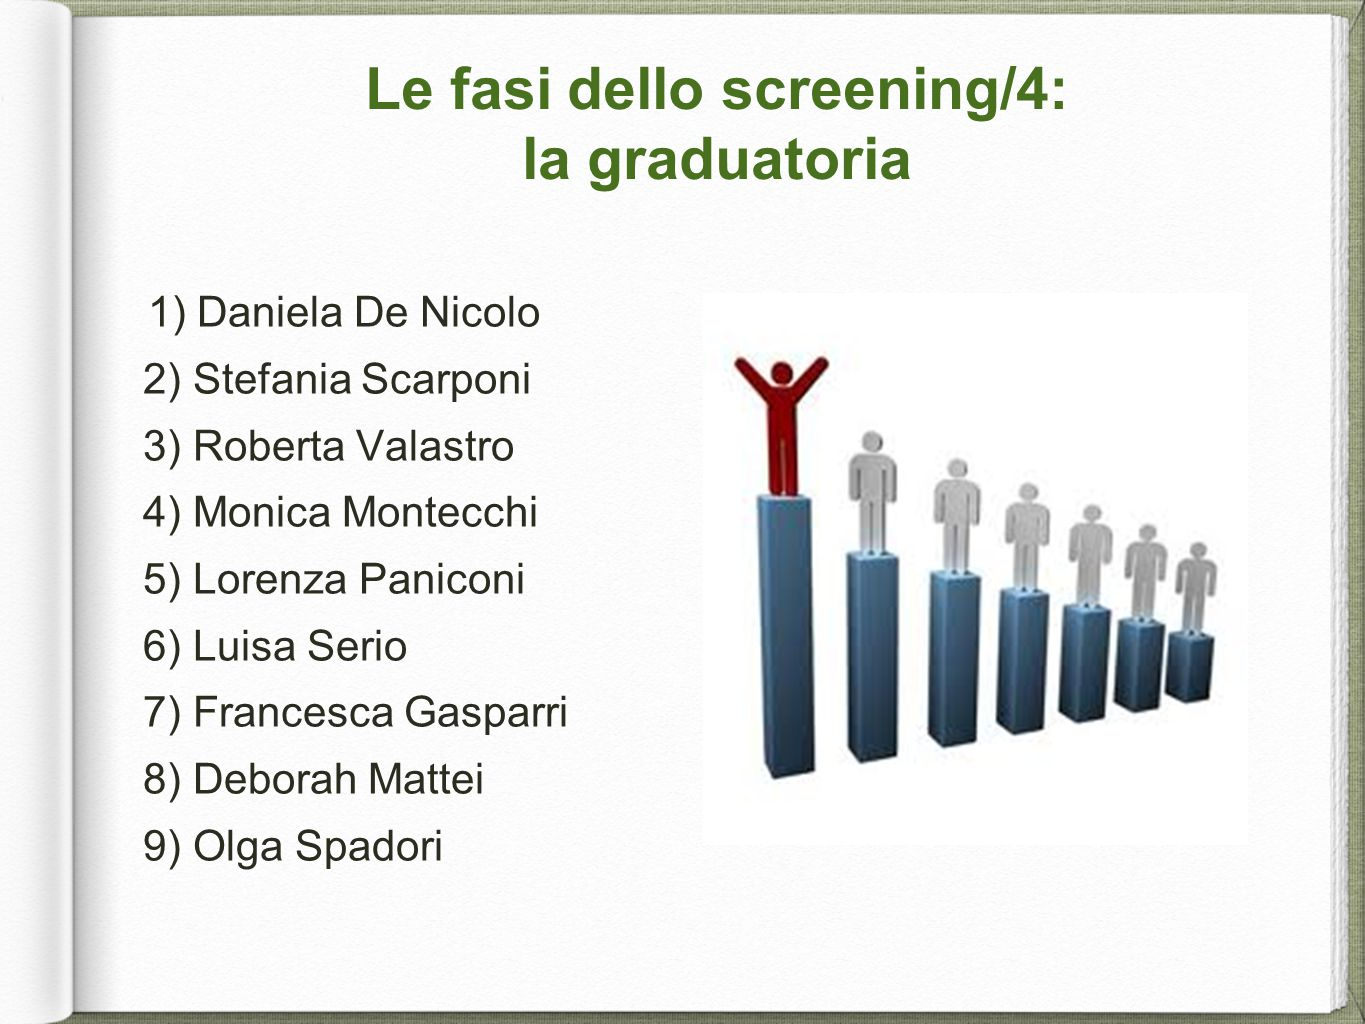 Le fasi dello screening/4: la graduatoria